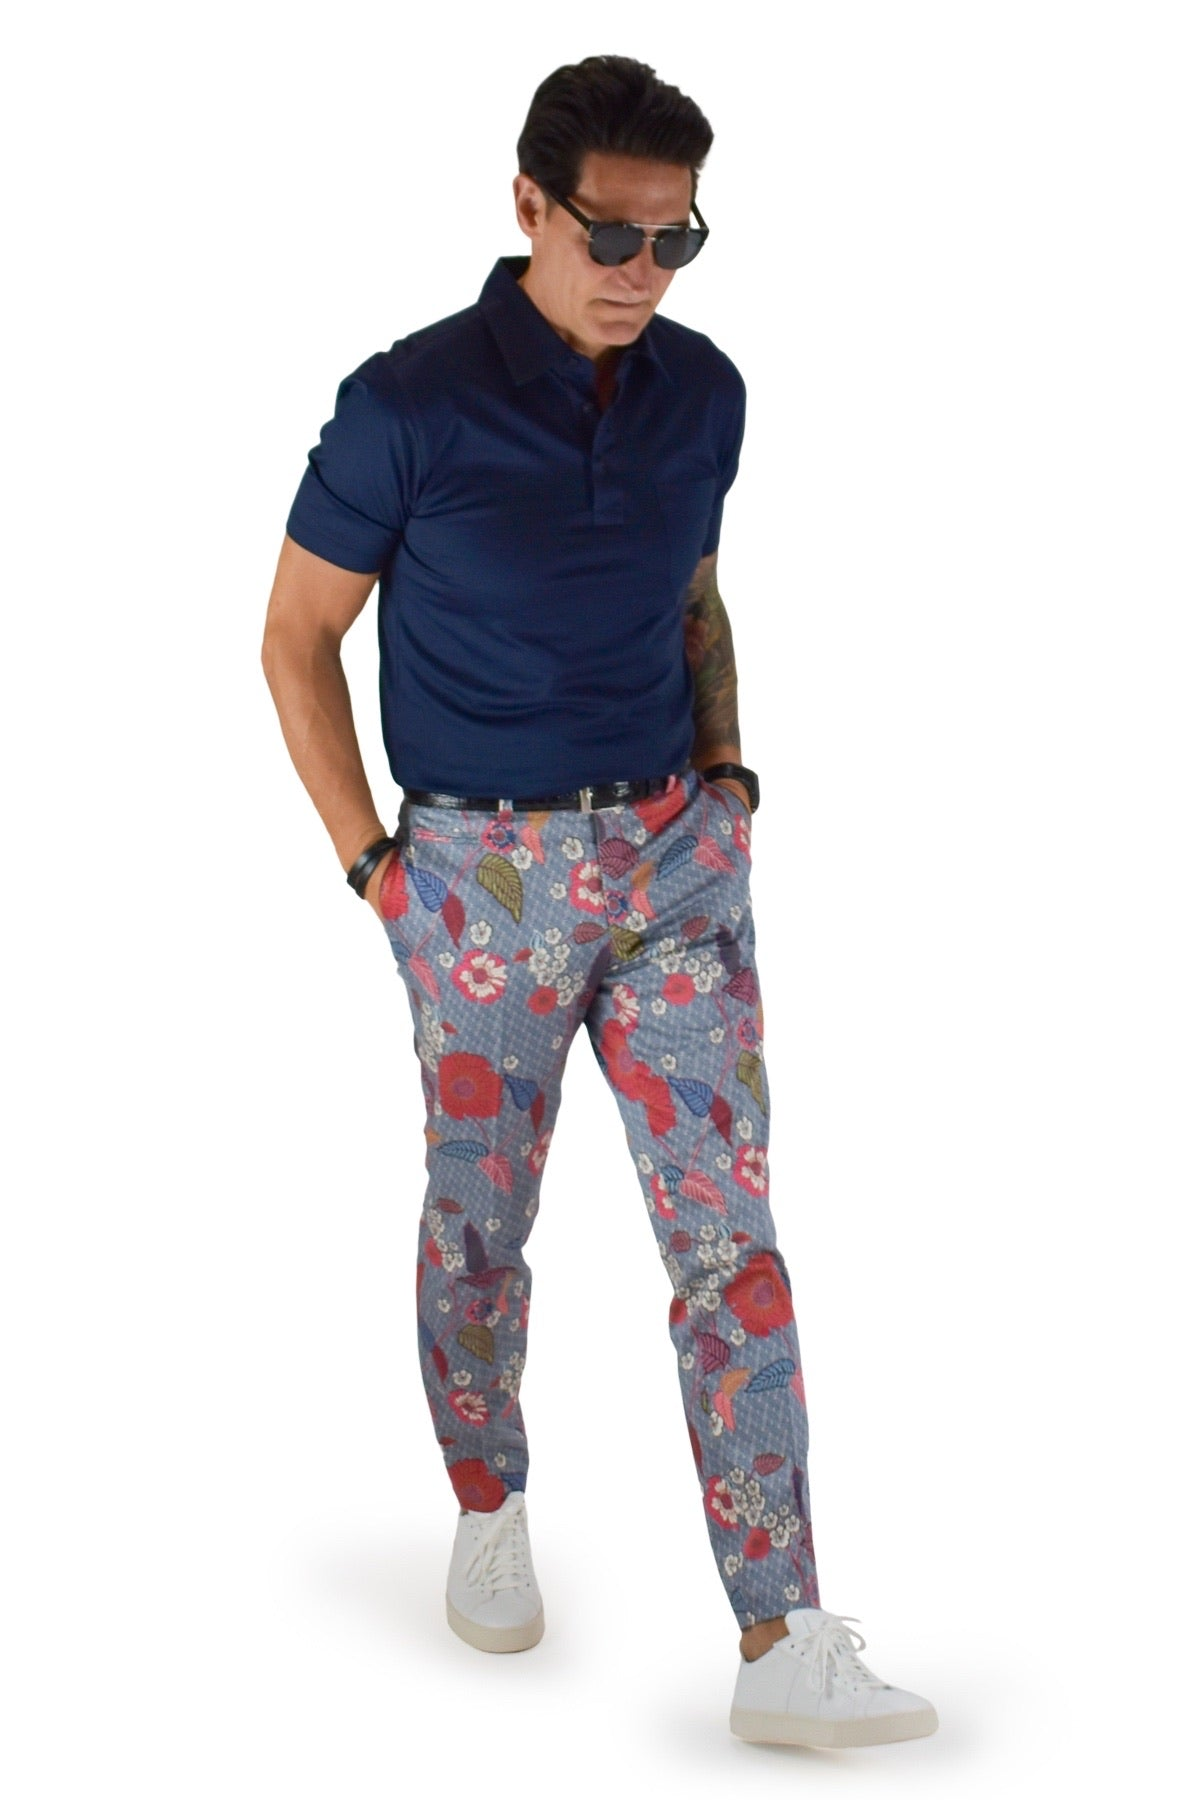 David August Slim Fit Tapered Navy with Multi-Color Floral Leaf Pattern Cotton Trousers - Cut-to-Order